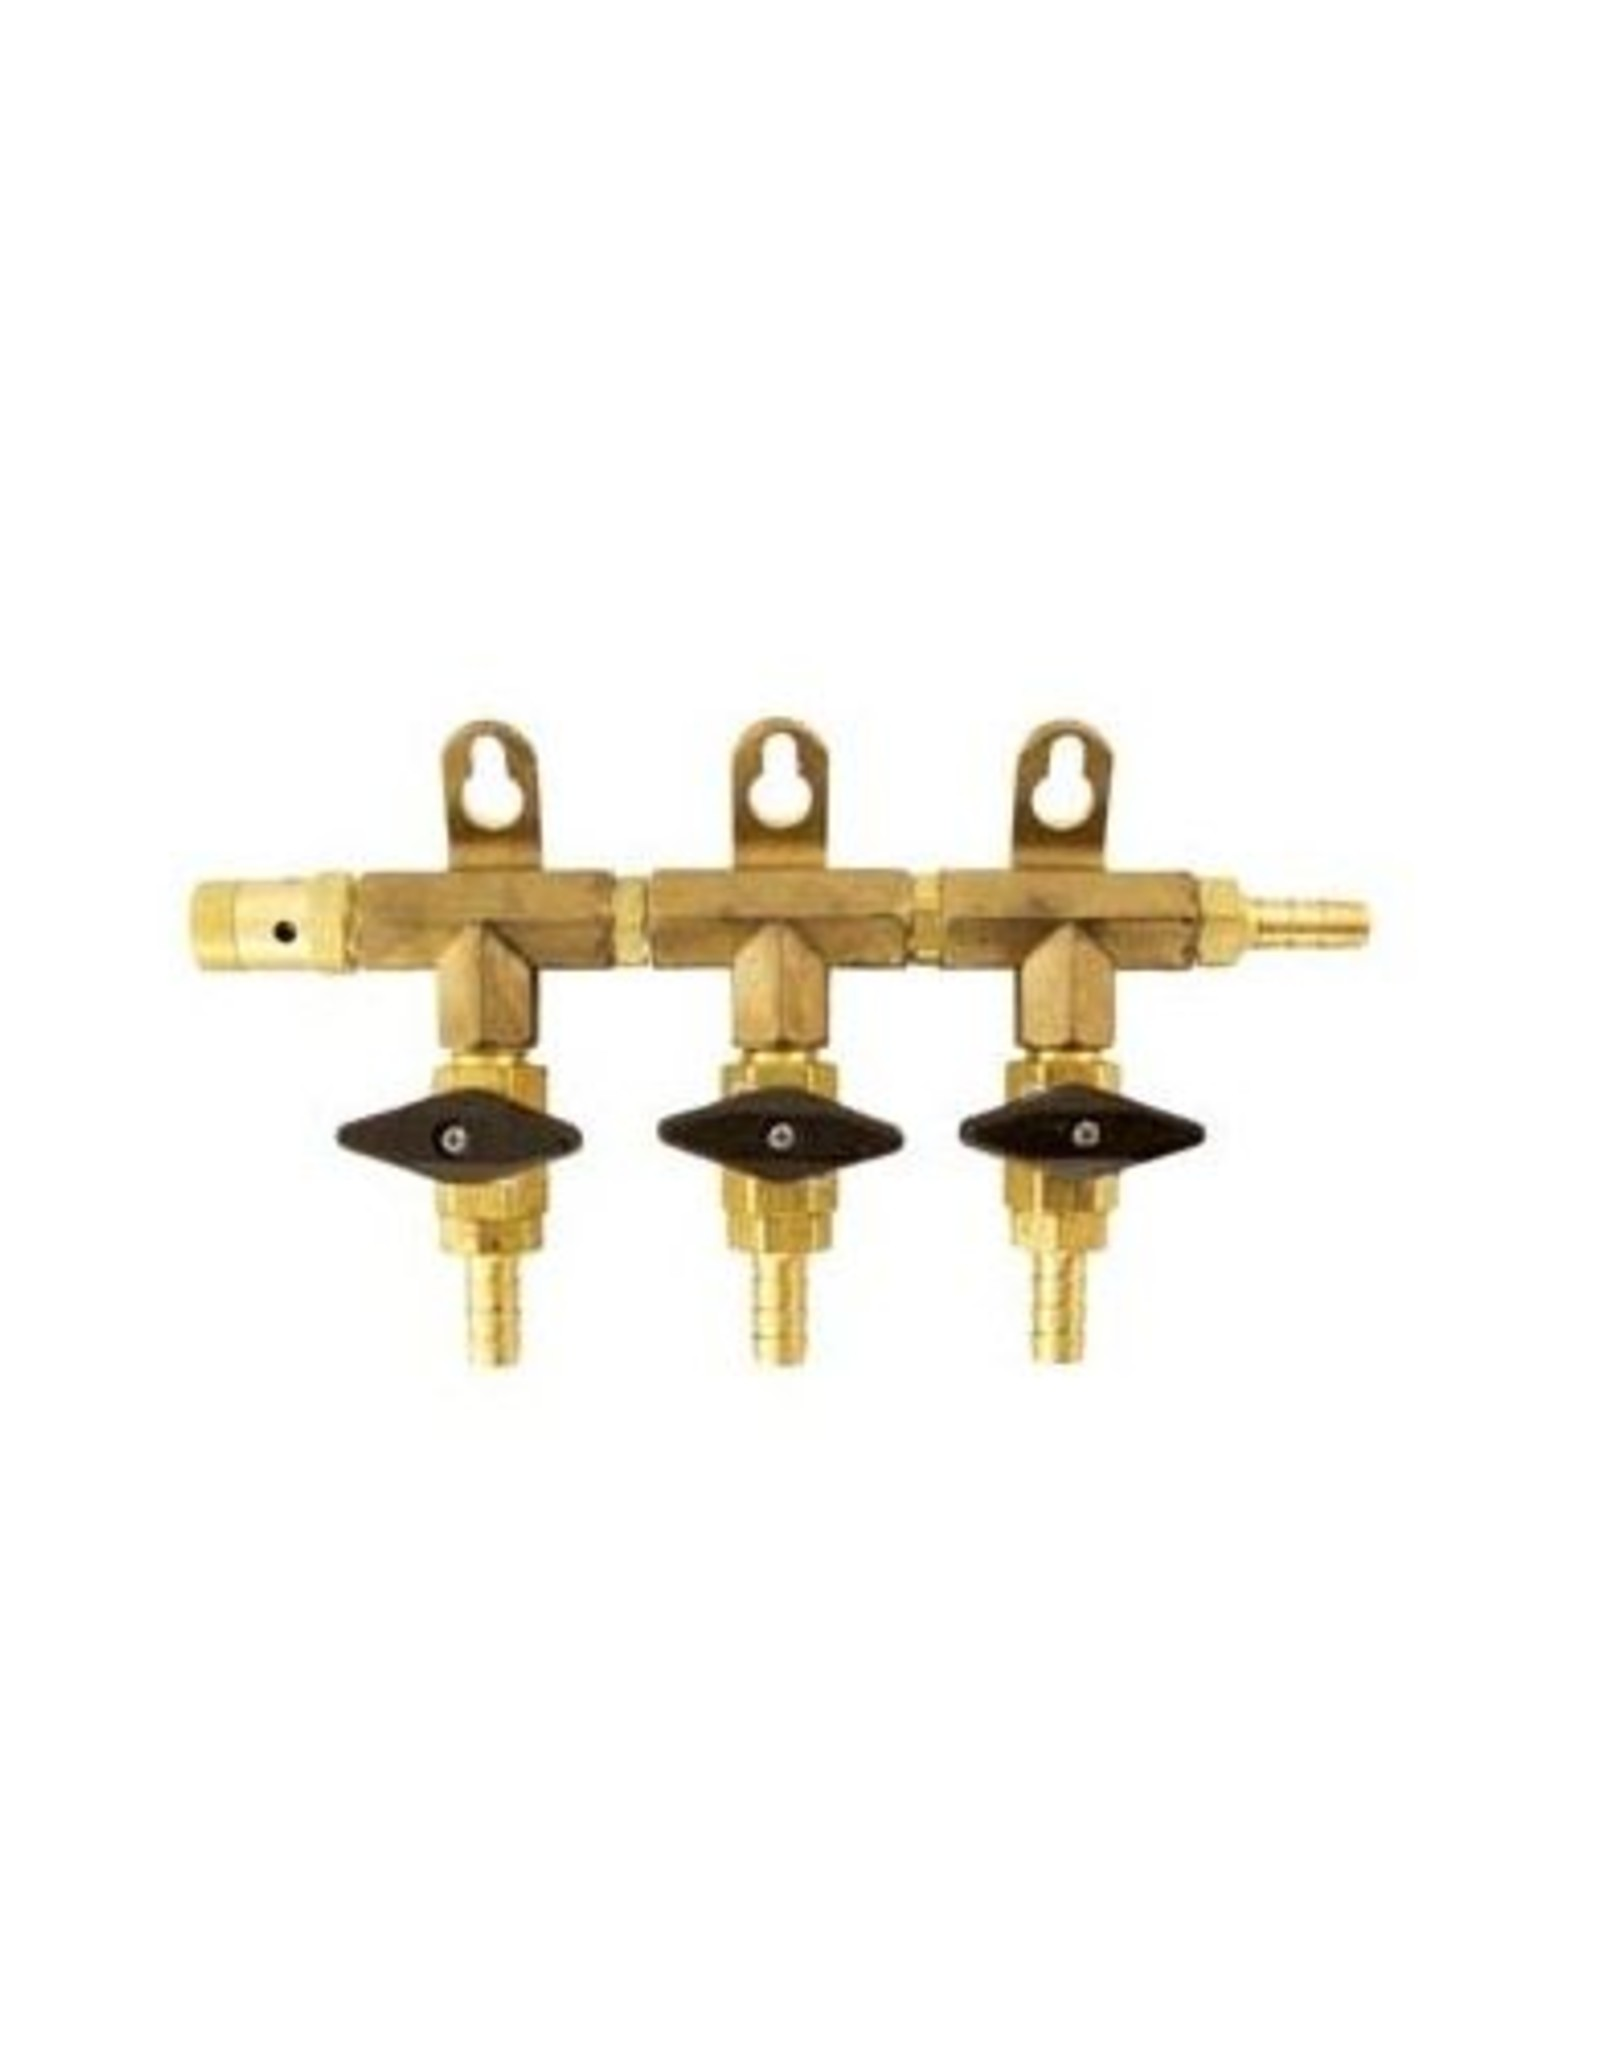 "MANIFOLD 3-WAY BRASS 5/16"" BARB"